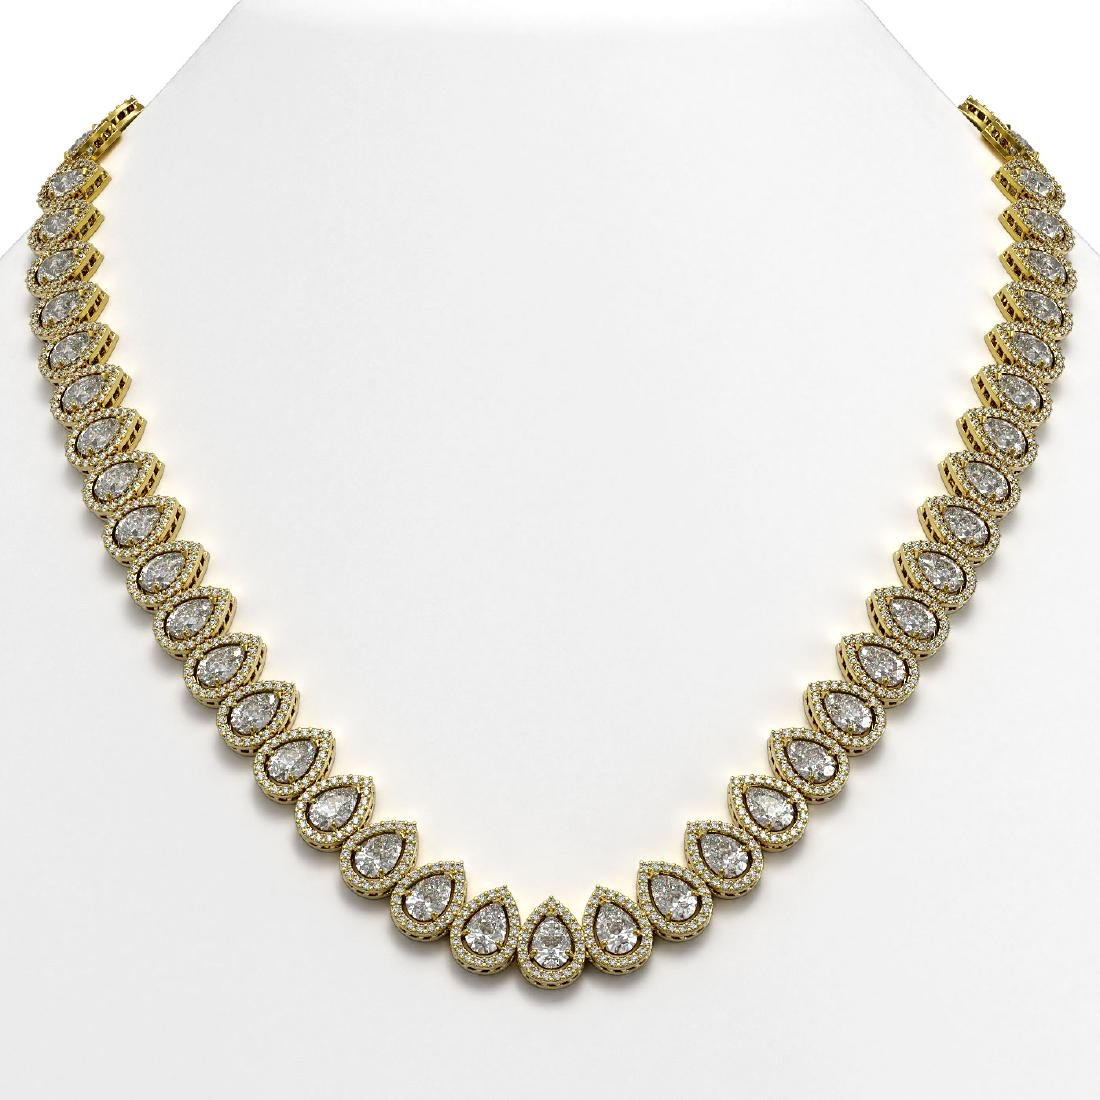 42.11 CTW Pear Diamond Designer Necklace 18K Yellow